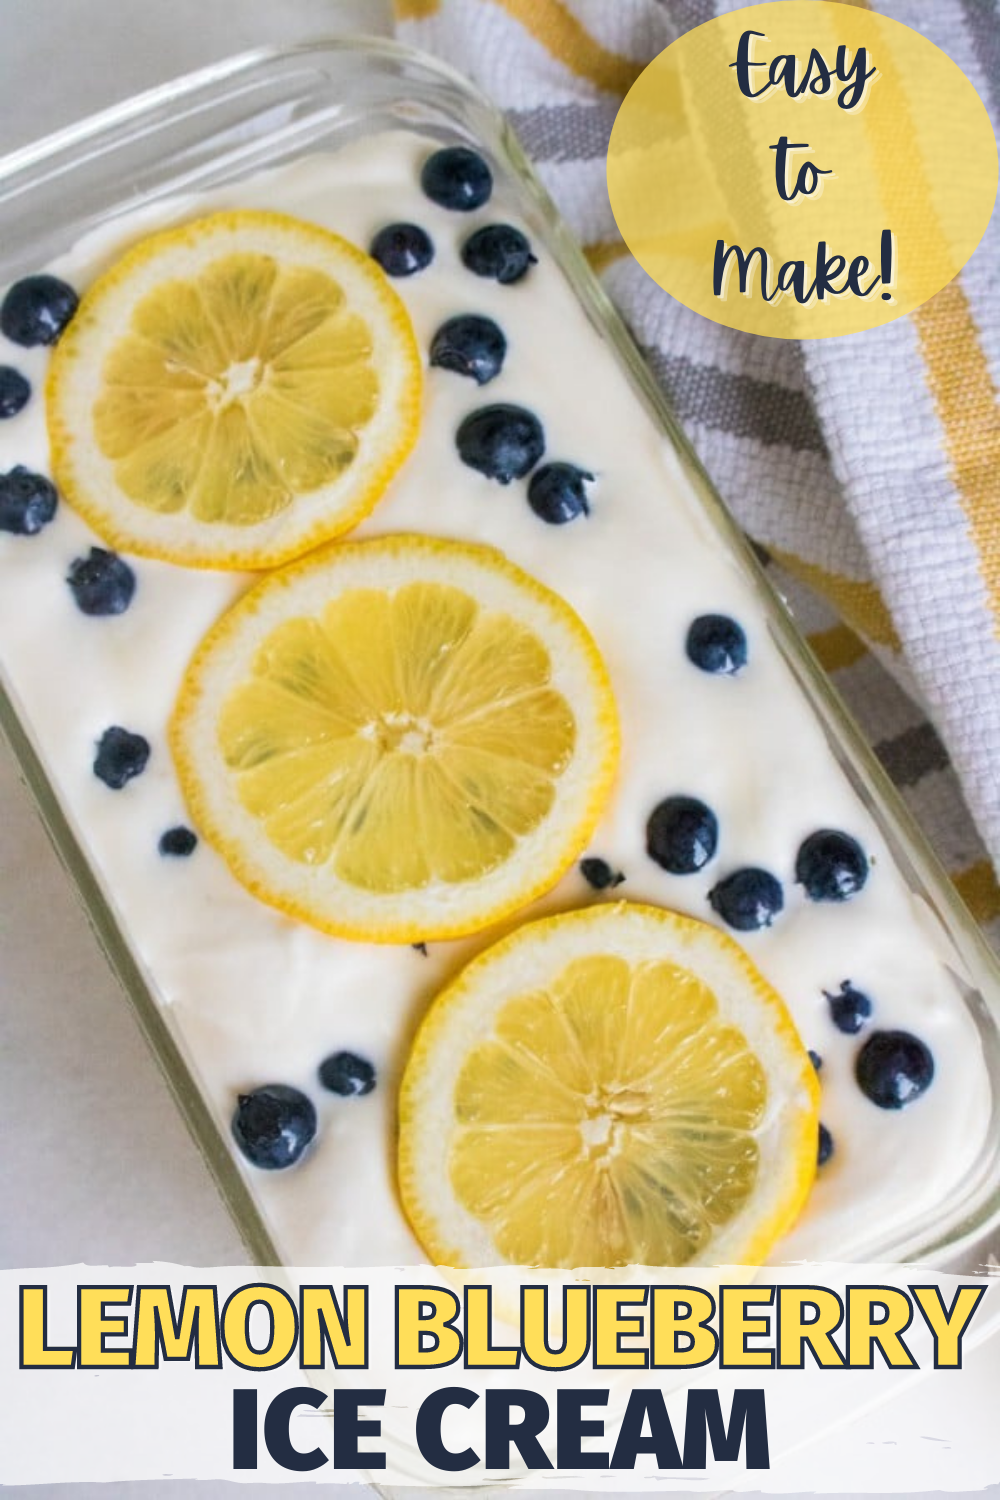 This Homemade Lemon Blueberry Ice Cream is so easy to make and the combination of flavors is delicious! #icecream #desserts via @wondermomwannab